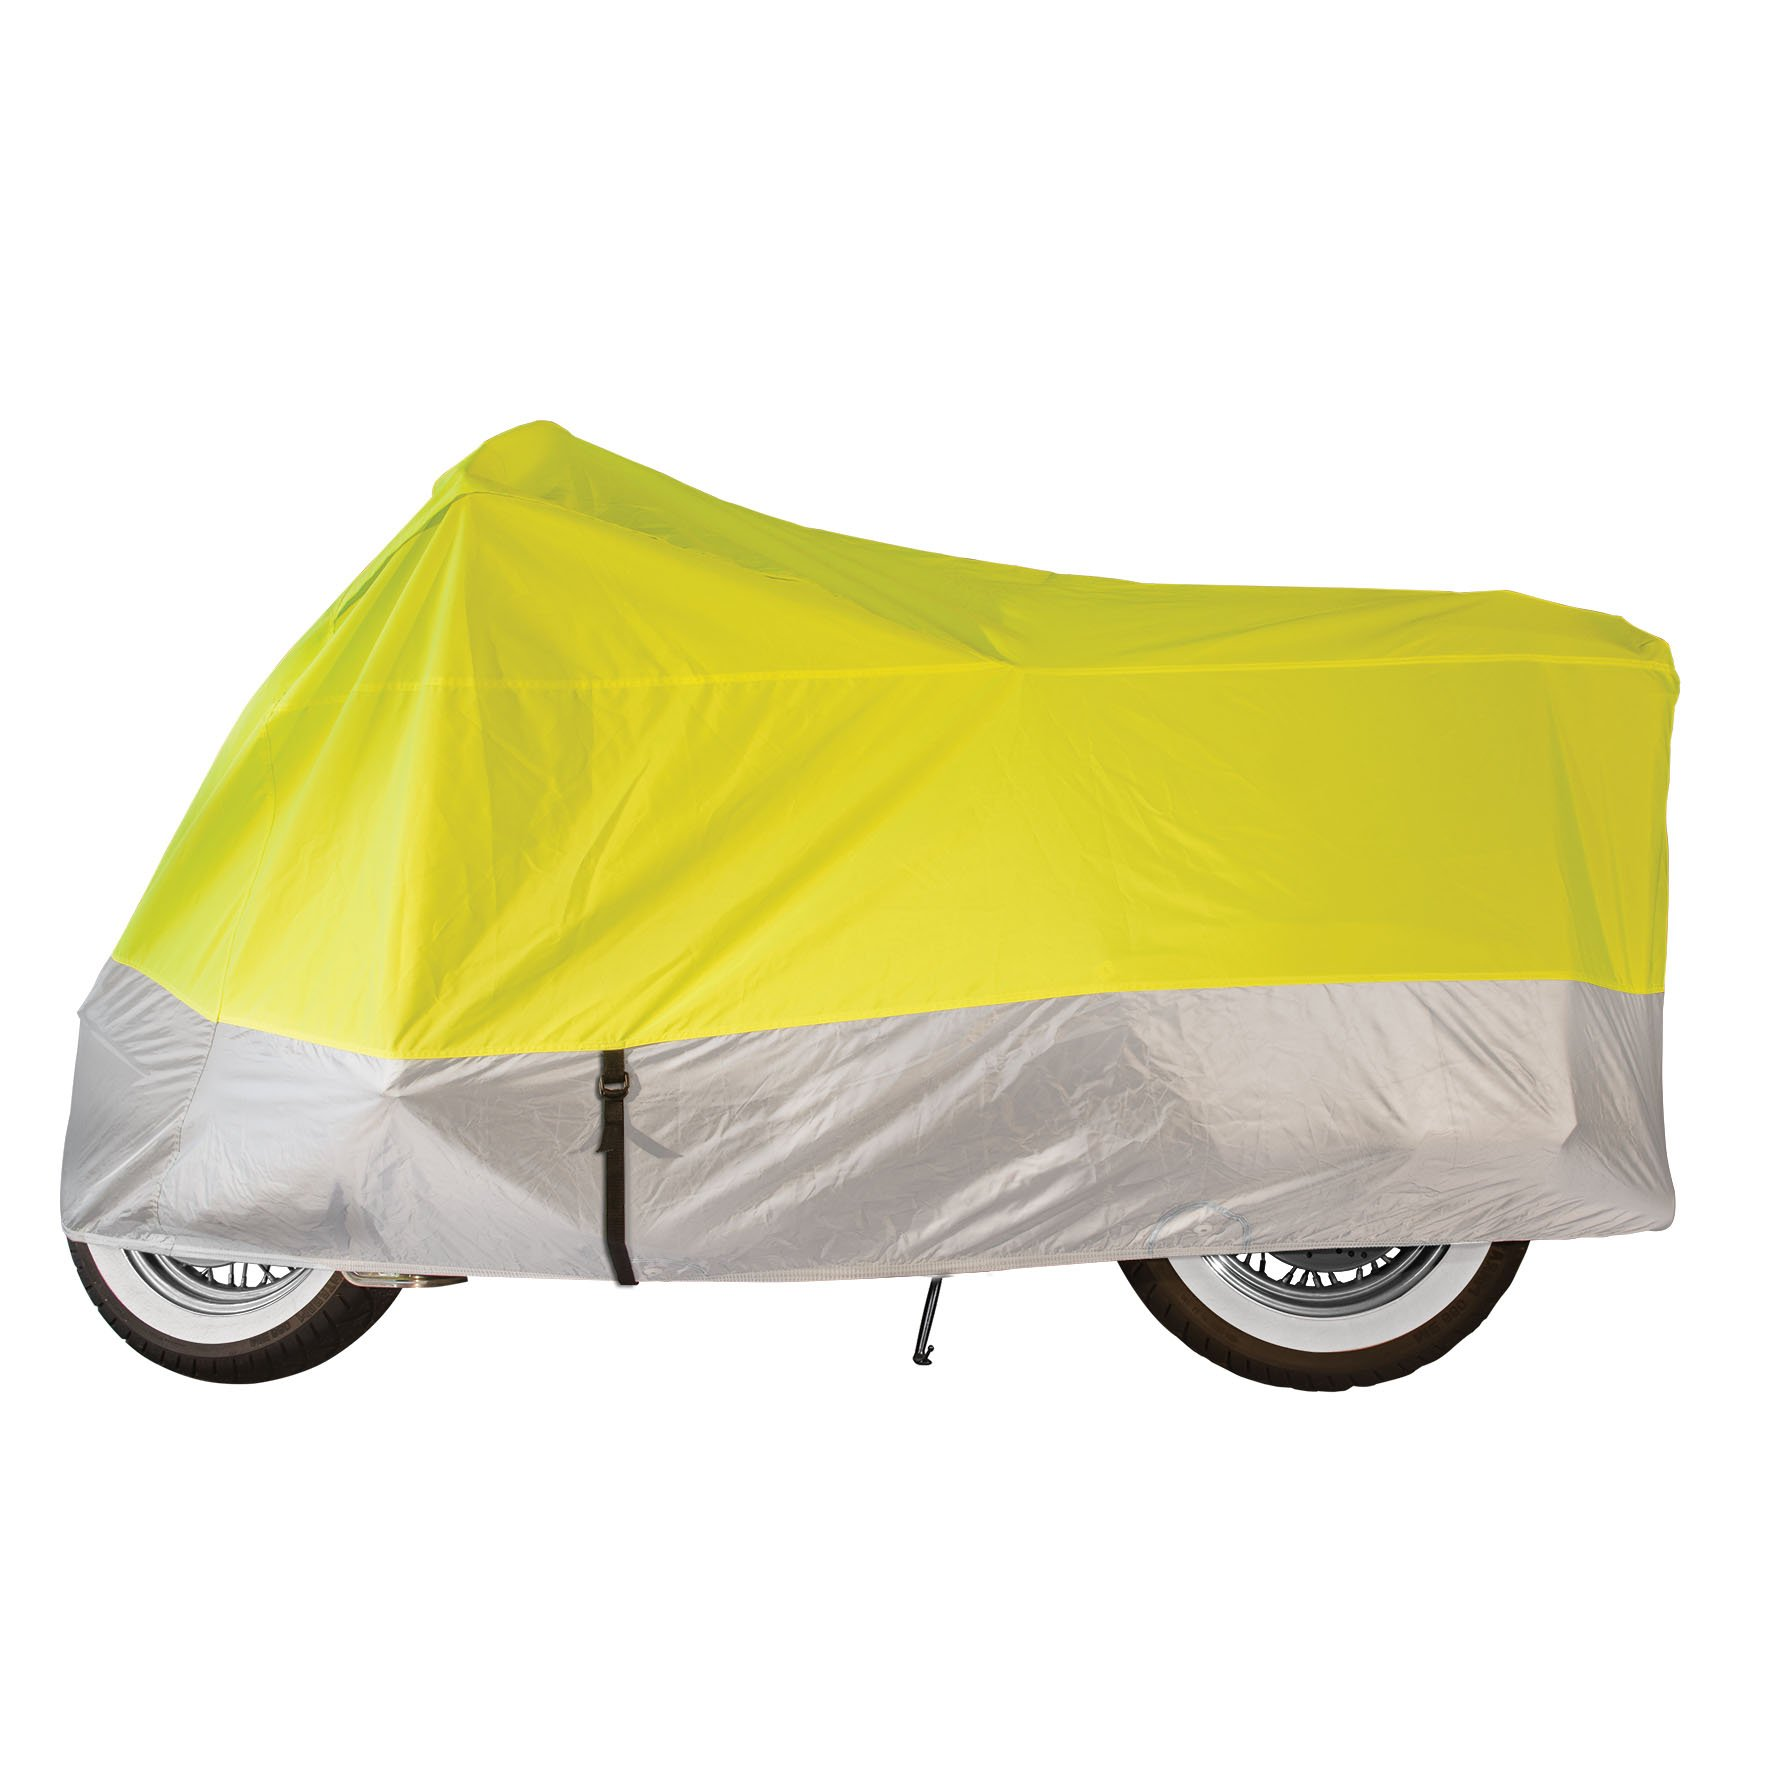 Dowco Guardian by 04822 Travel Ready Water Resistant Indoor/Outdoor Motorcycle Cover, Internal Storage Compartment: Hi -Viz, Medium, Sportbike